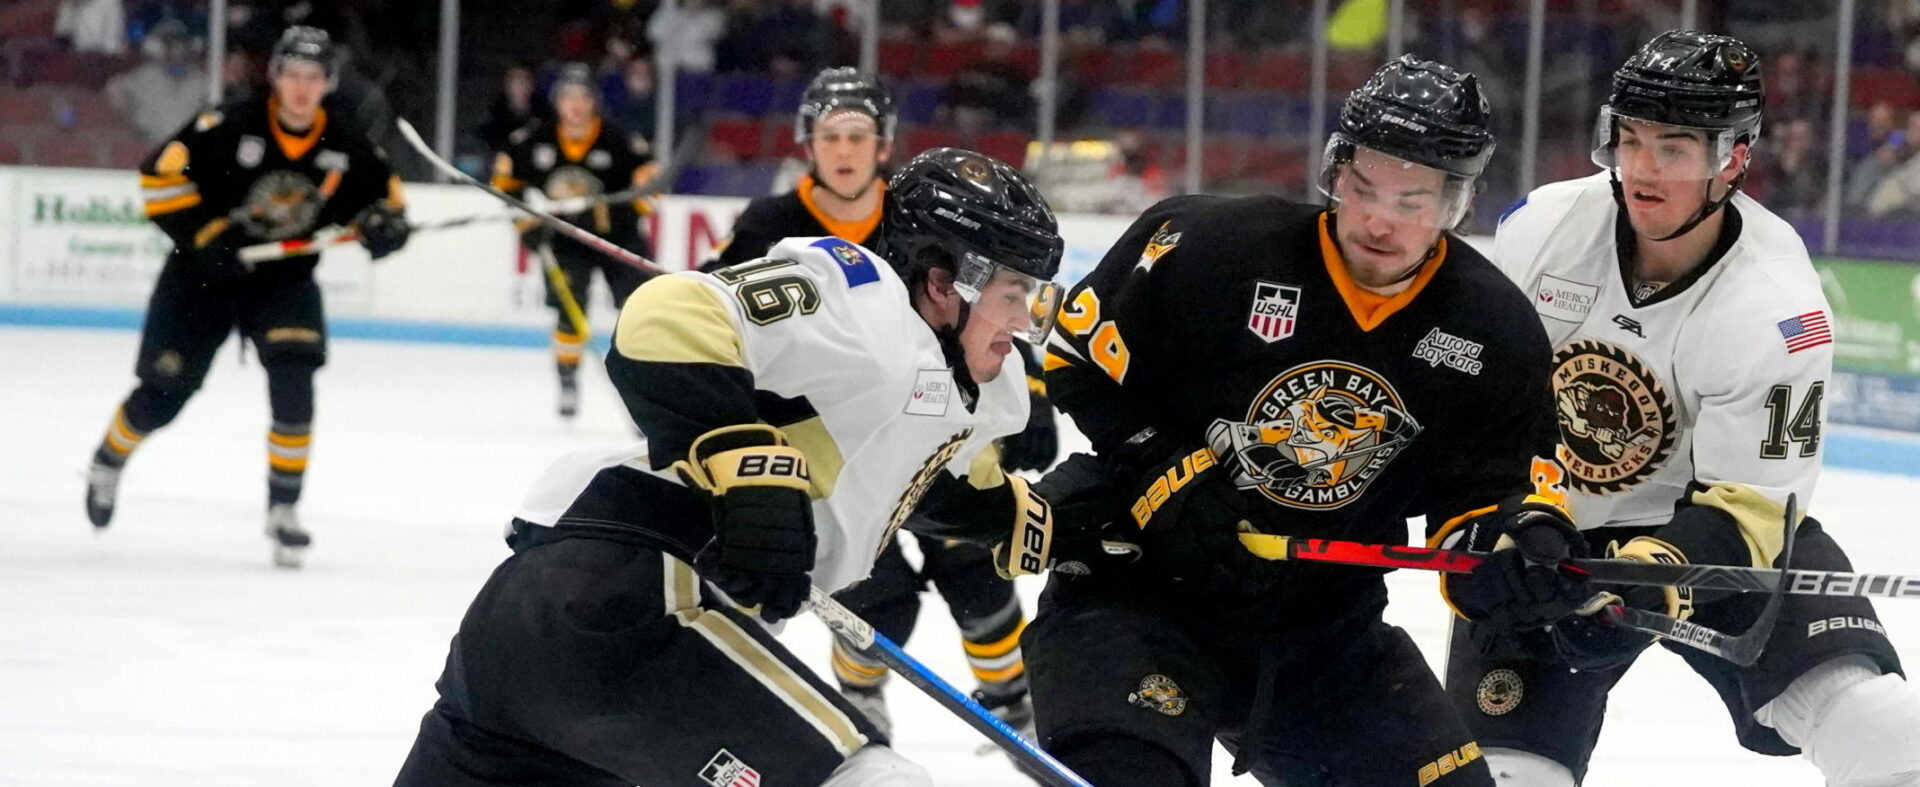 Lumberjacks win another playoff thriller 3-1 over Green Bay, advance to play Chicago in the Eastern Conference finals